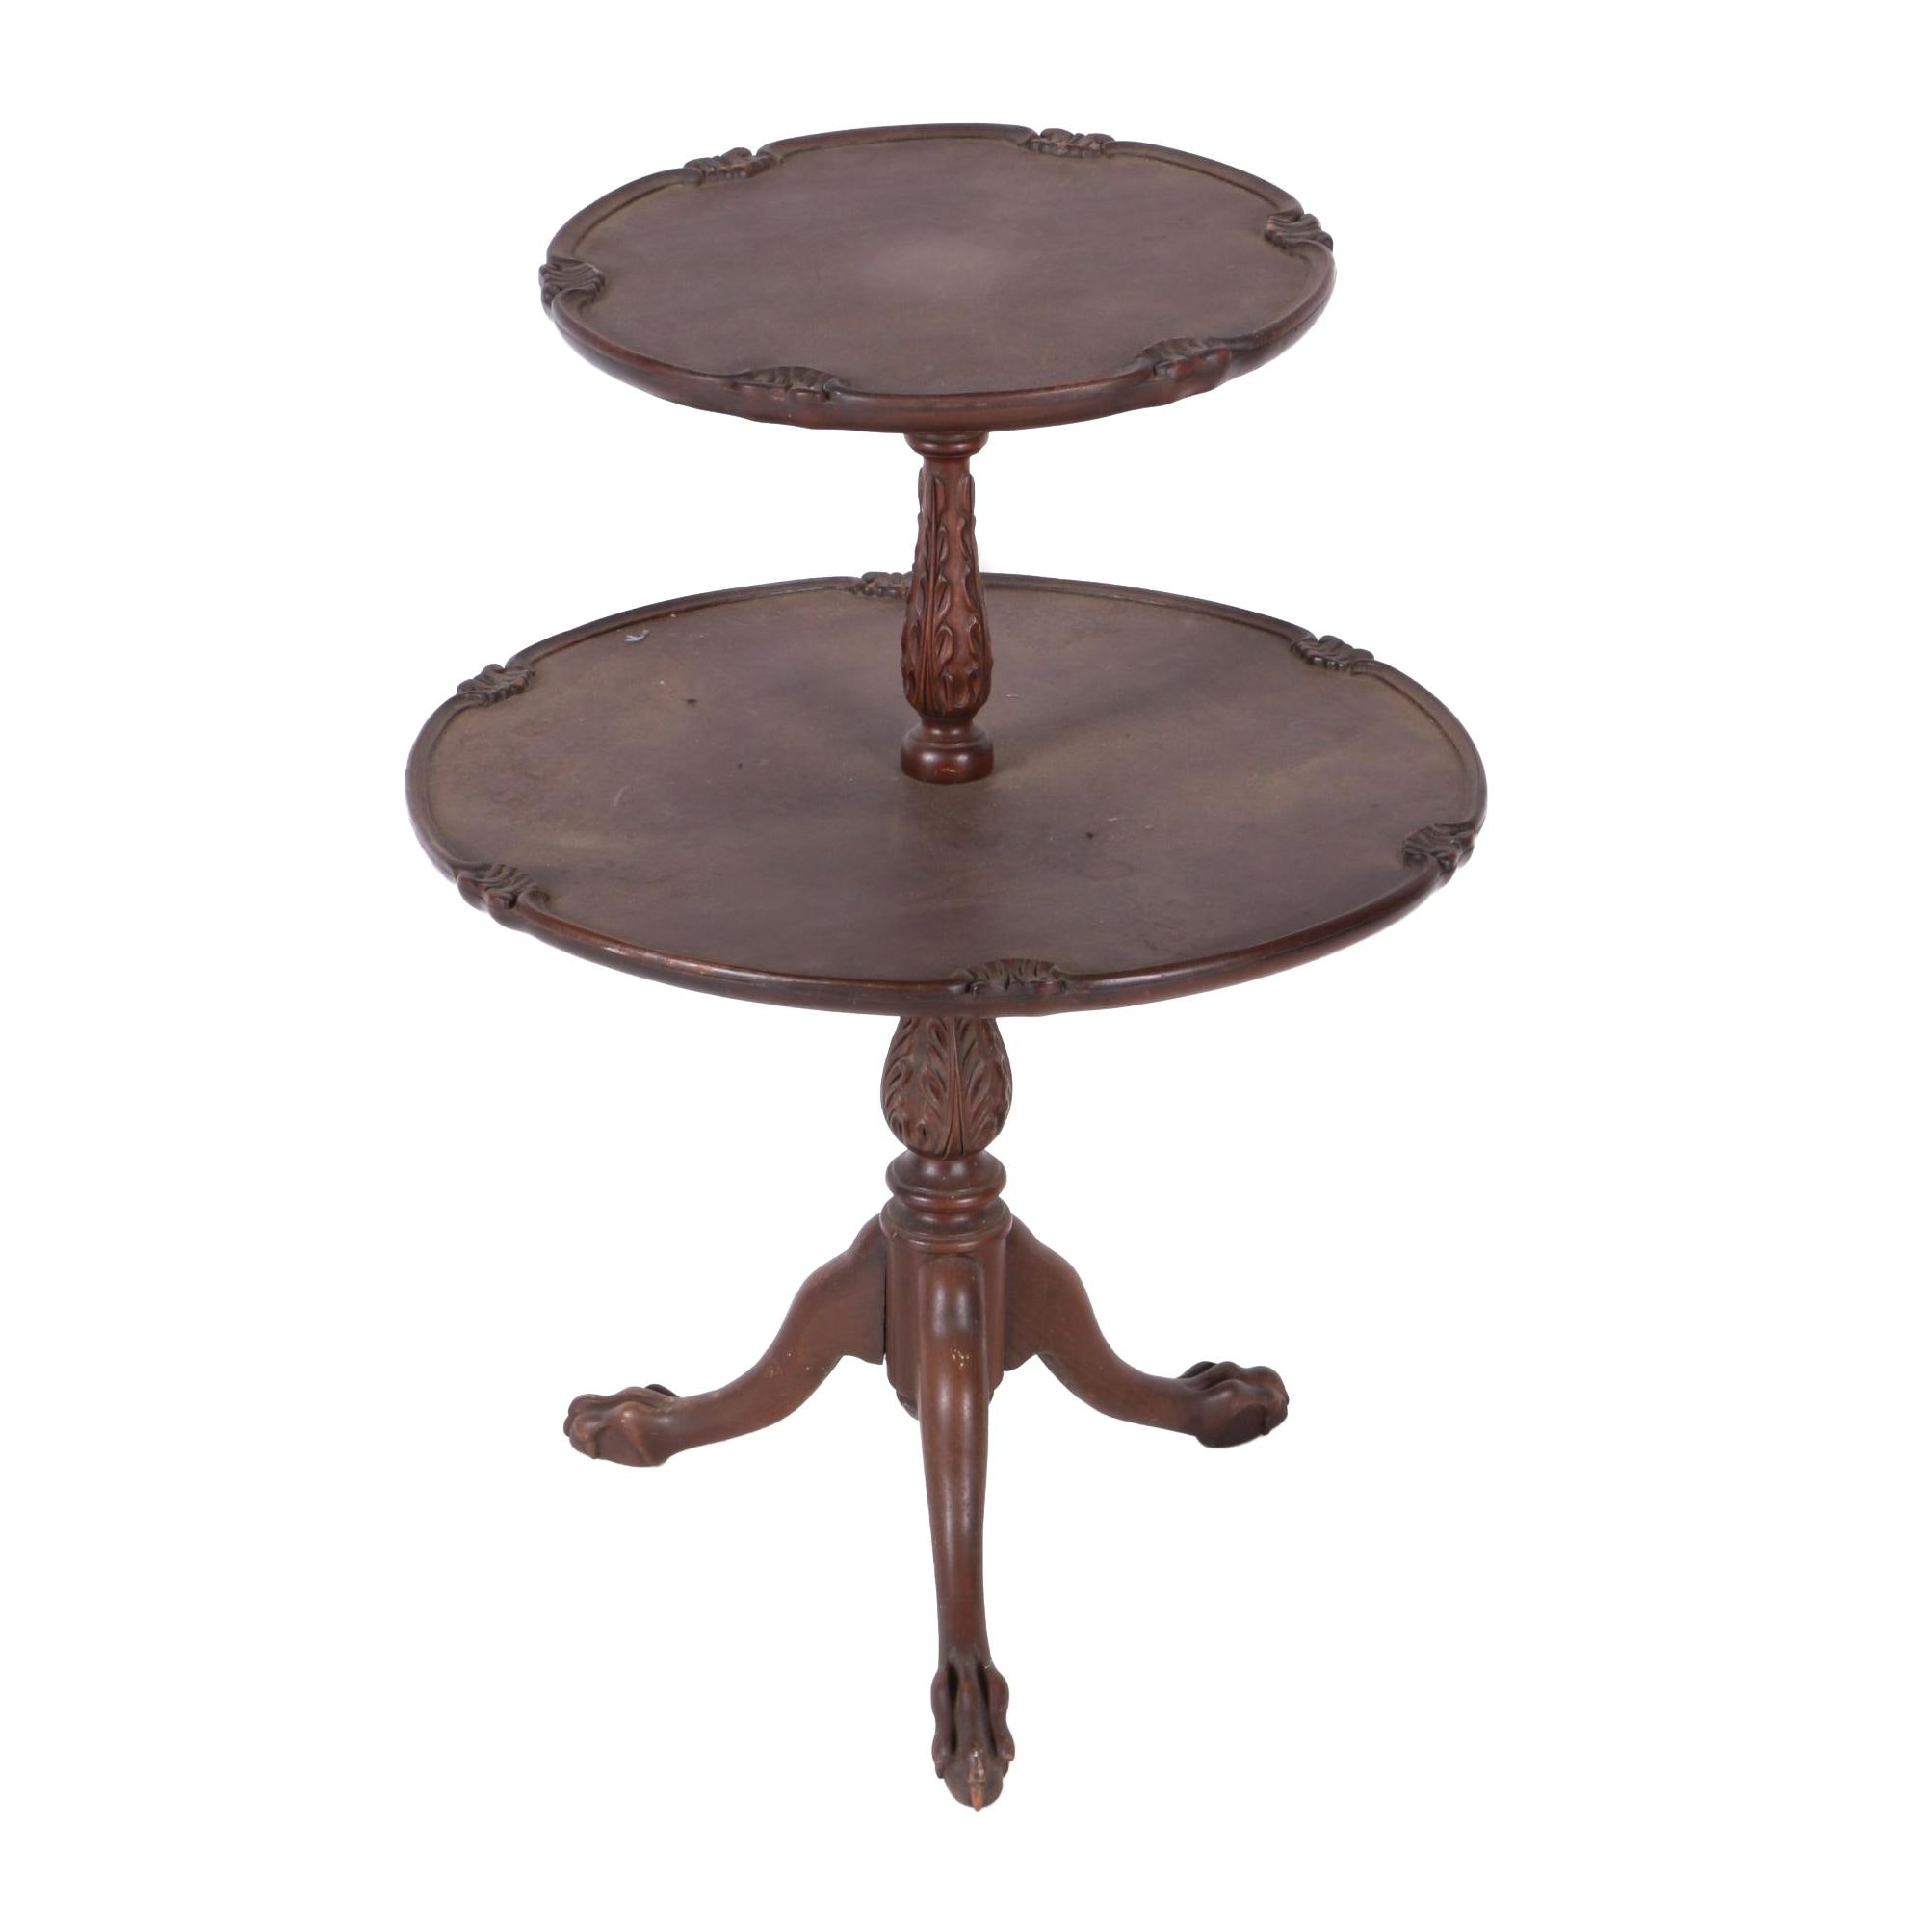 Vintage Queen Anne Style Mahogany Dumbwaiter Table